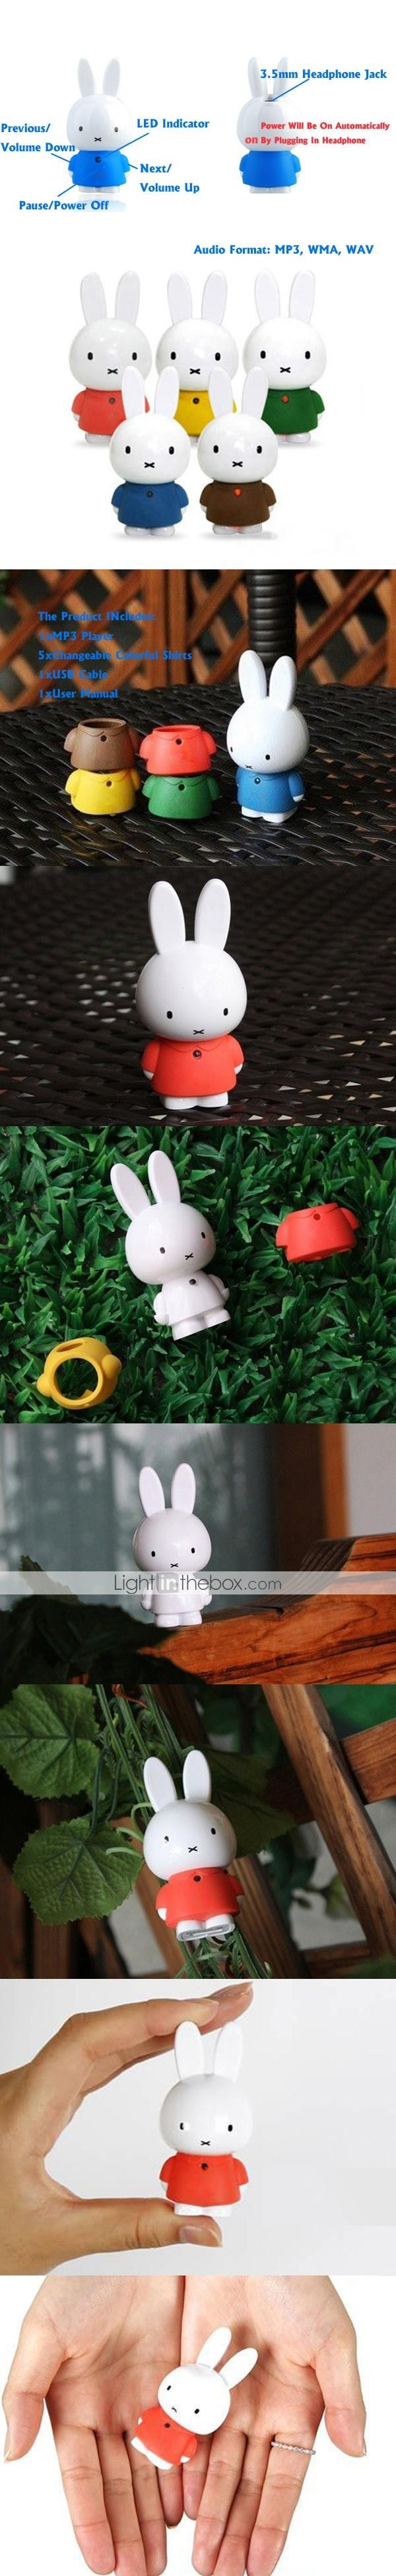 4GB Rabbit Cartoon MP3 Player With Changeable Color